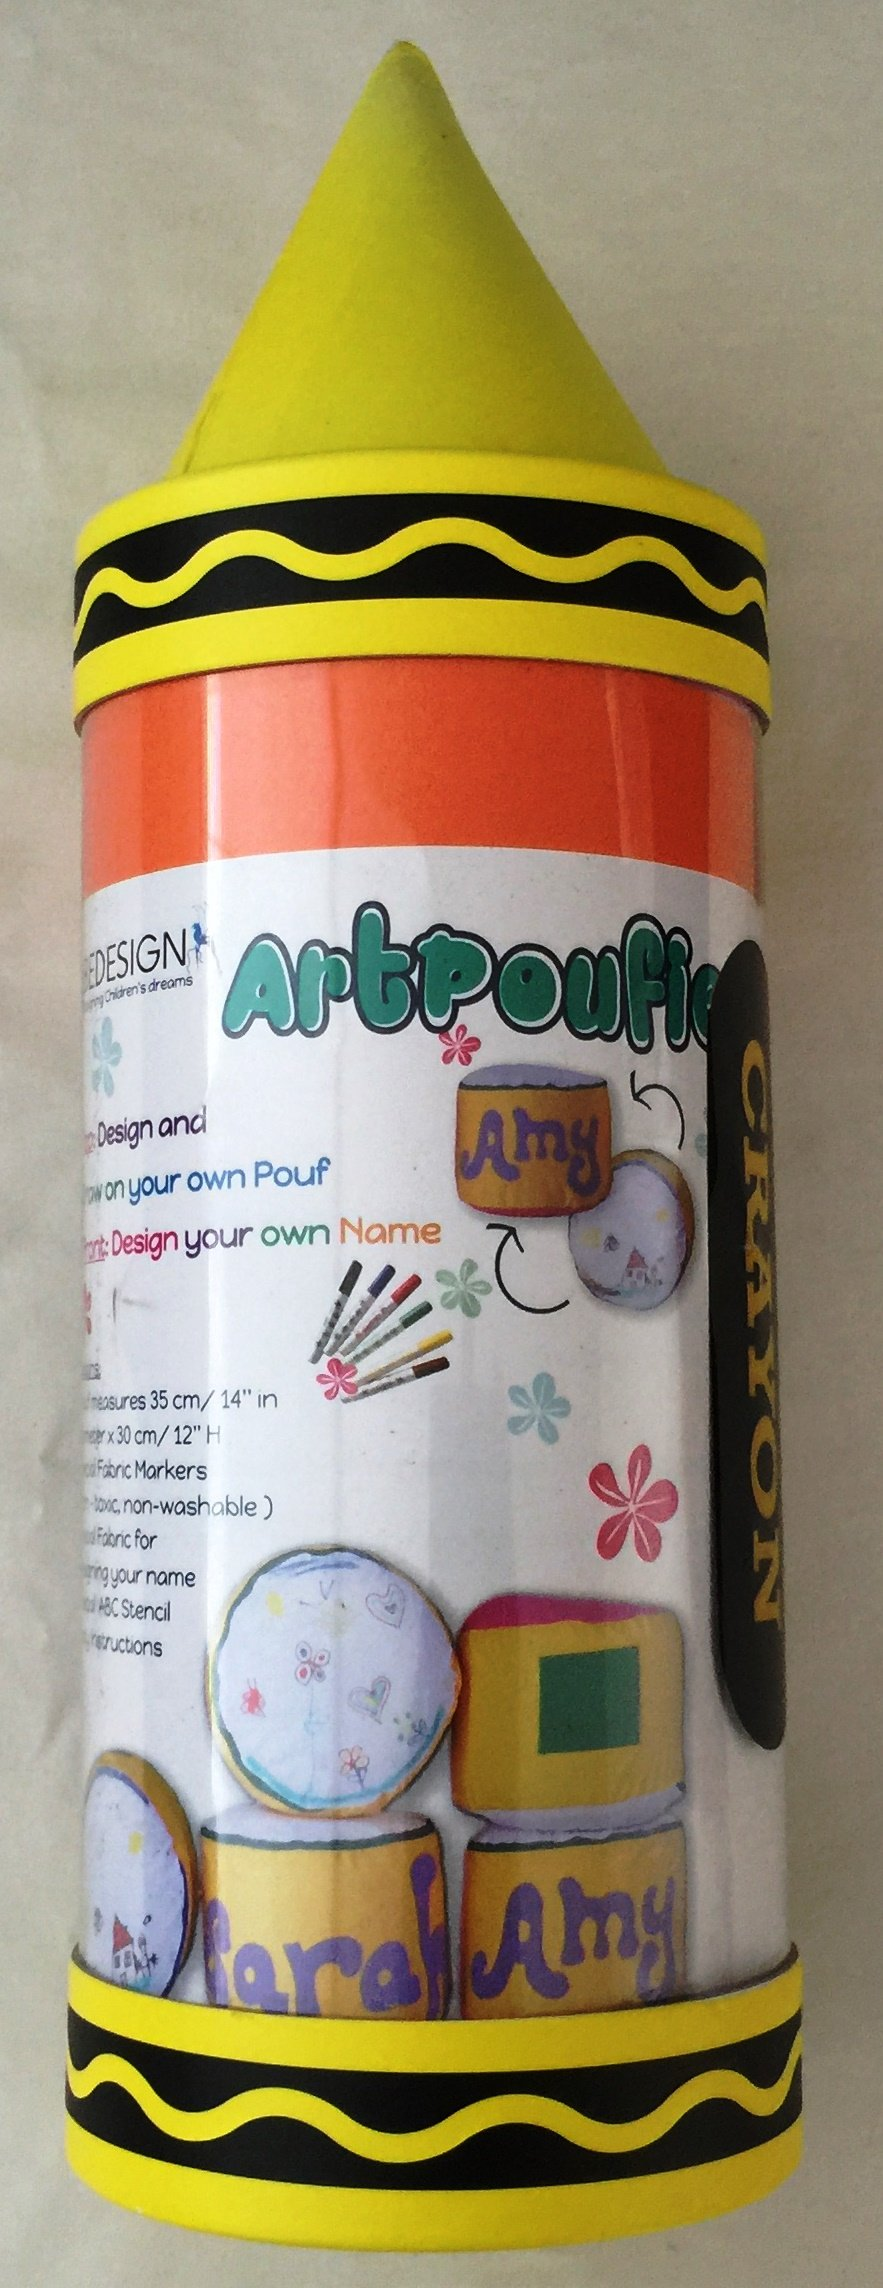 Bedesign Studio ArtPoufie - Craft My First personalize pouf Kit (Yellow/Blue with Green)